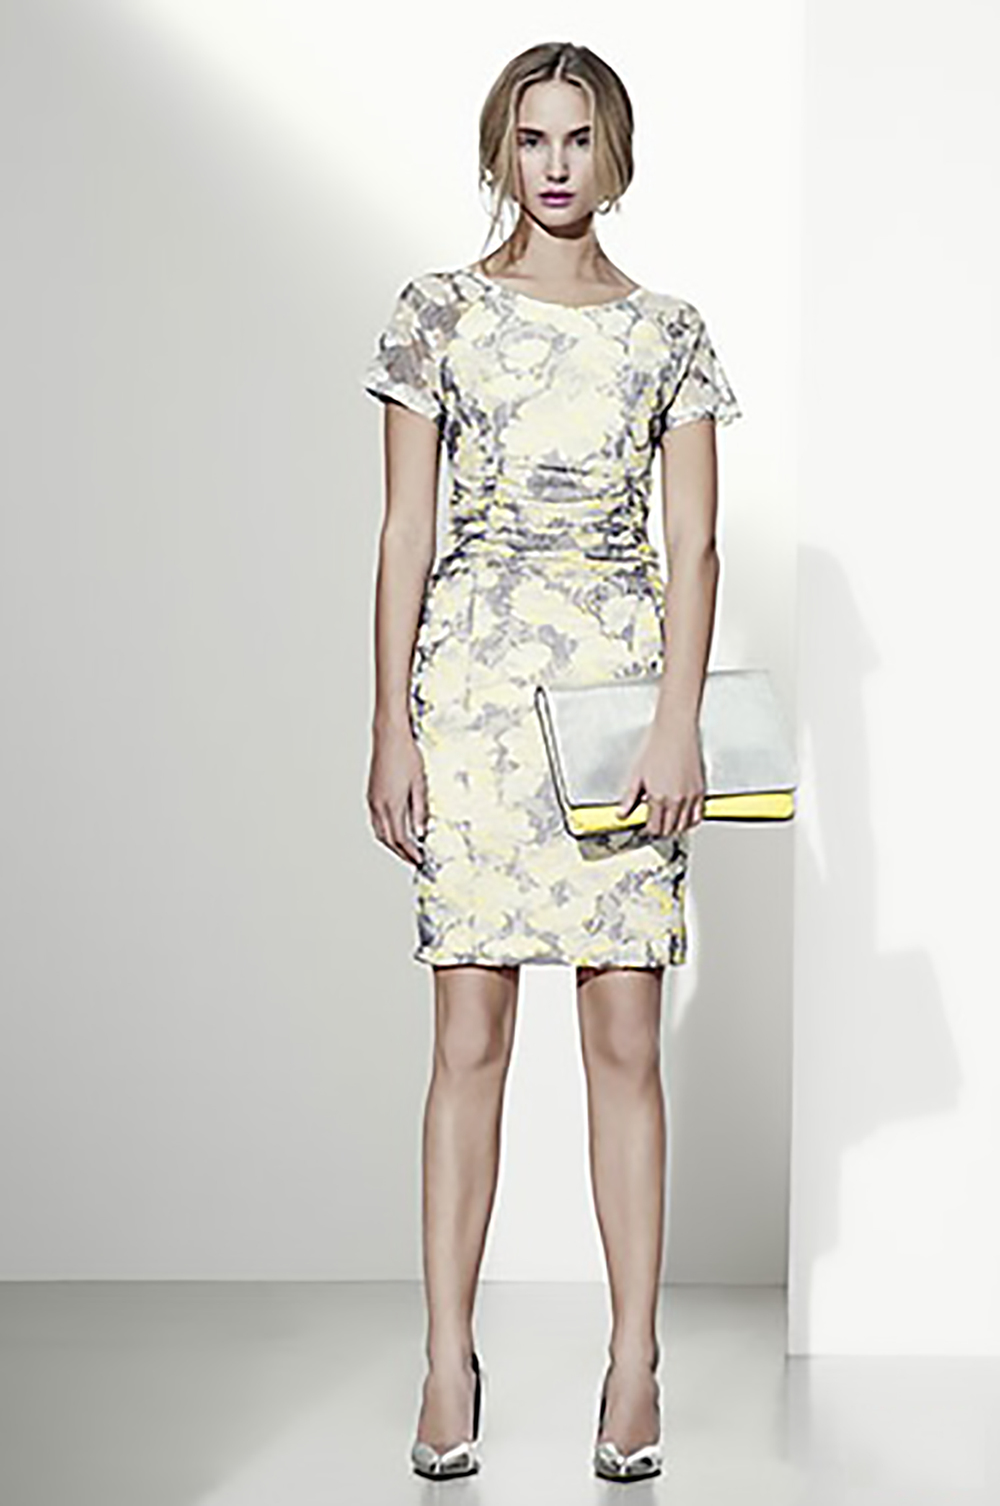 refinery 29 M&S spring catalog 2014 M&S 1500.jpg